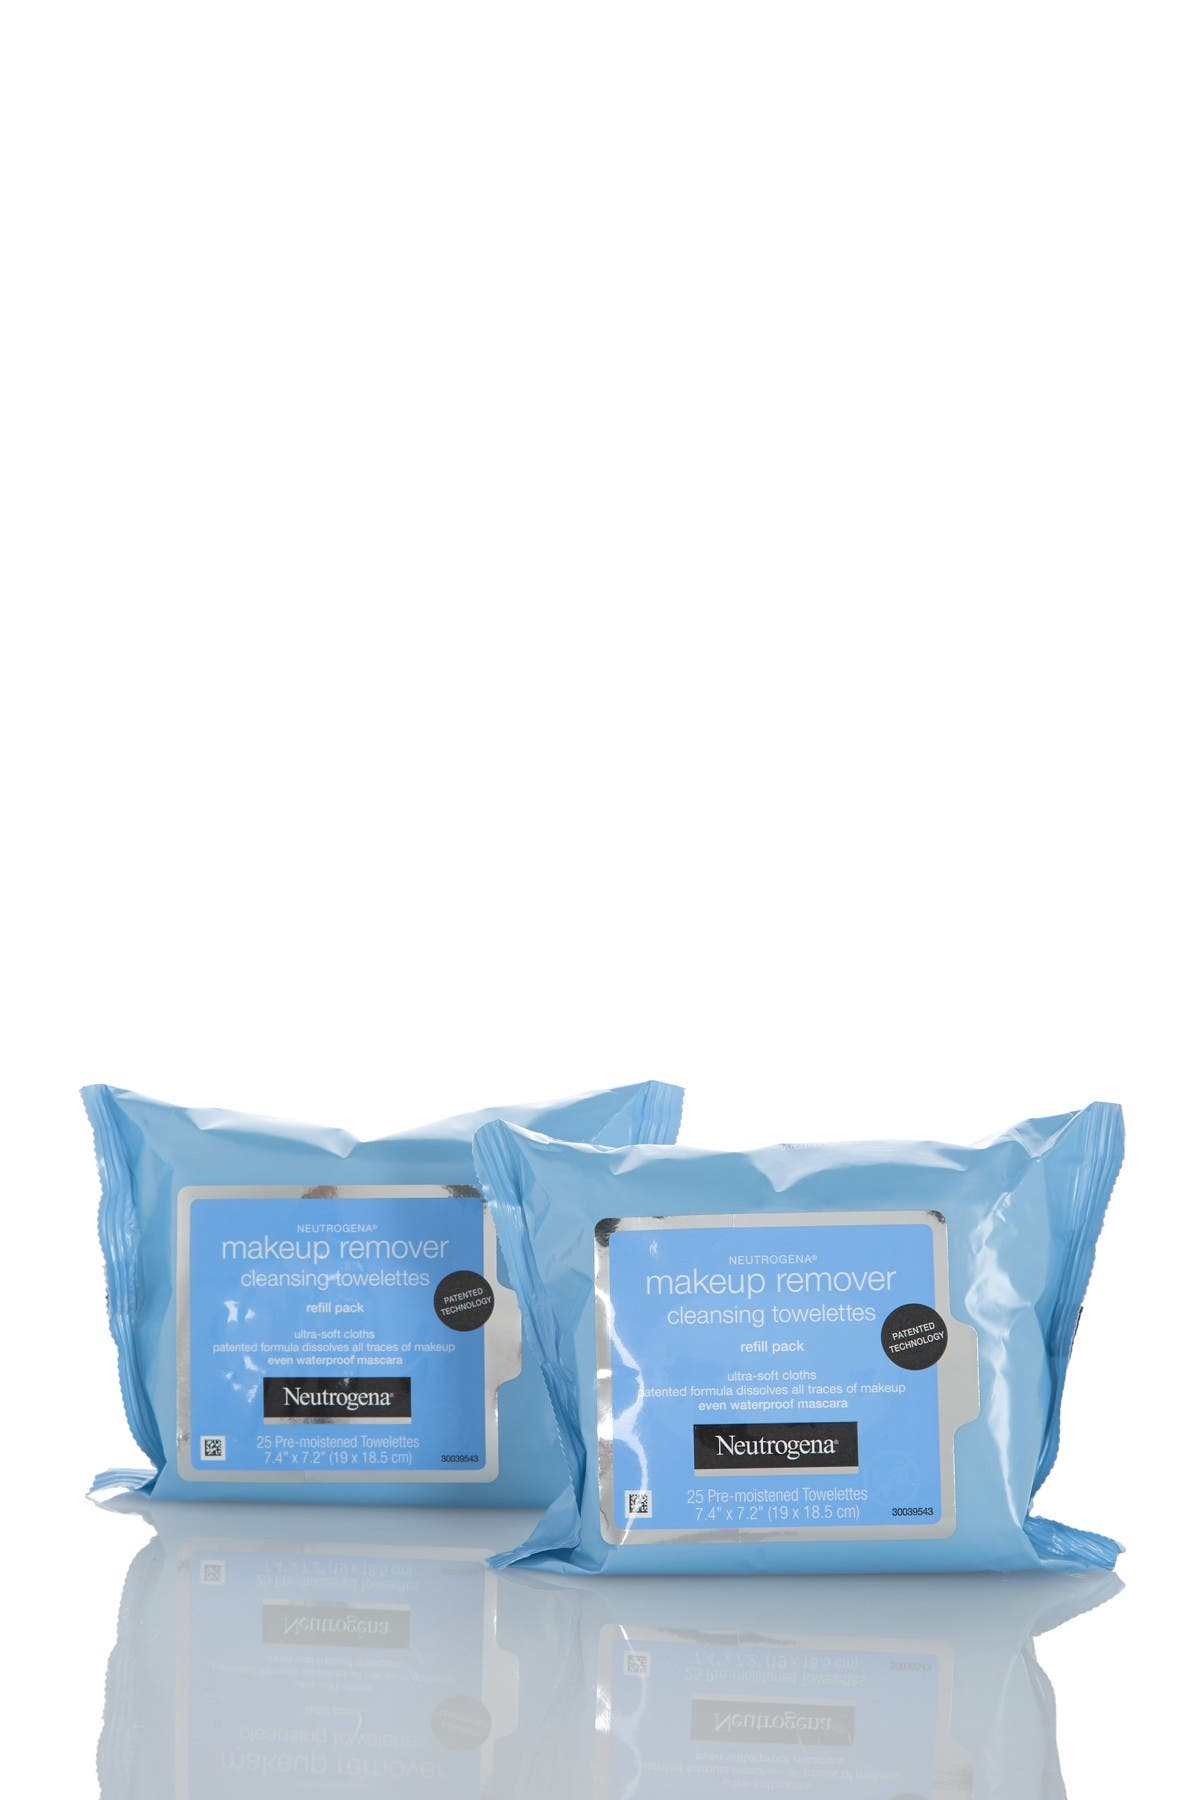 Image of Neutrogena Makeup Remover Cleansing Towelettes - Pack of 2